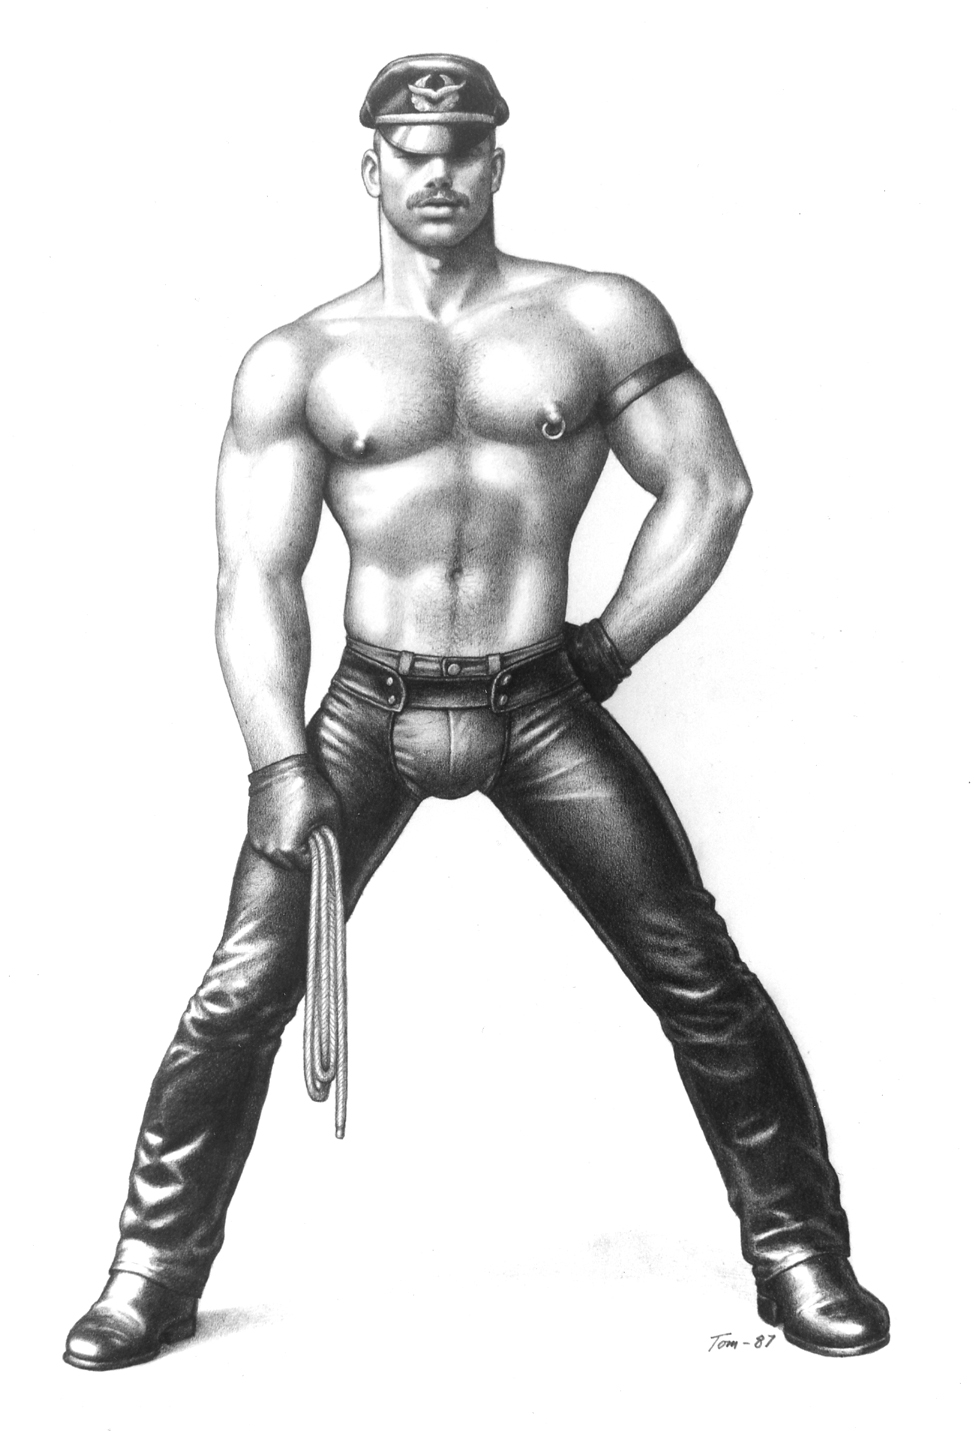 Tom of Finland - UNTITLED COVERMAN